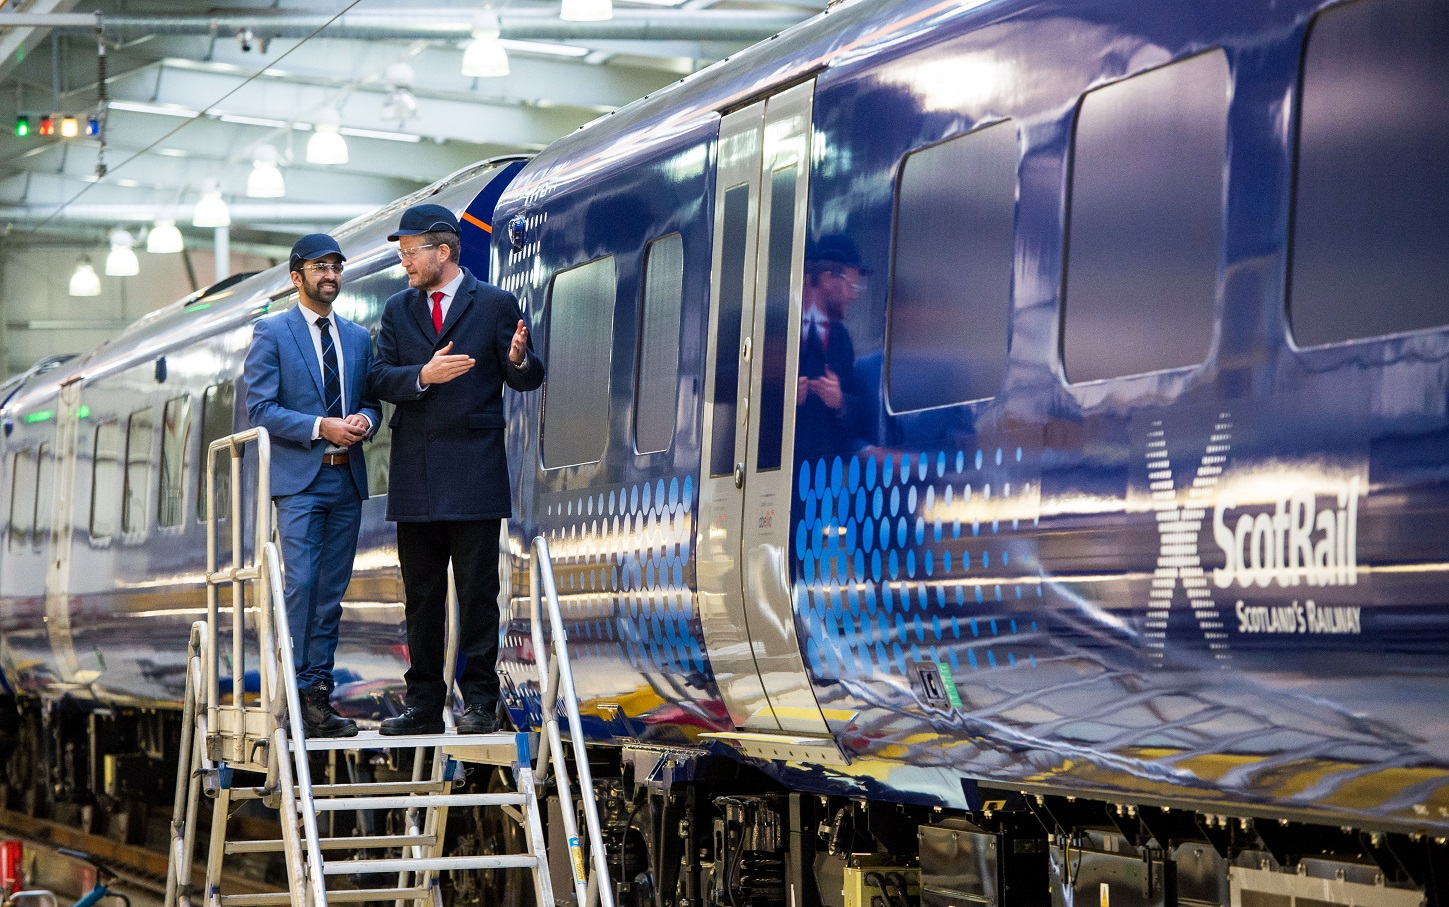 11/12/16    SHIELDS DEPOT - GLASGOW    Humza Yousaf (Transport Minister) and Phil Verster (Managing Director of ScotRail Alliance) unveil the first of a new fleet of Class 385 trains at Shields Depot